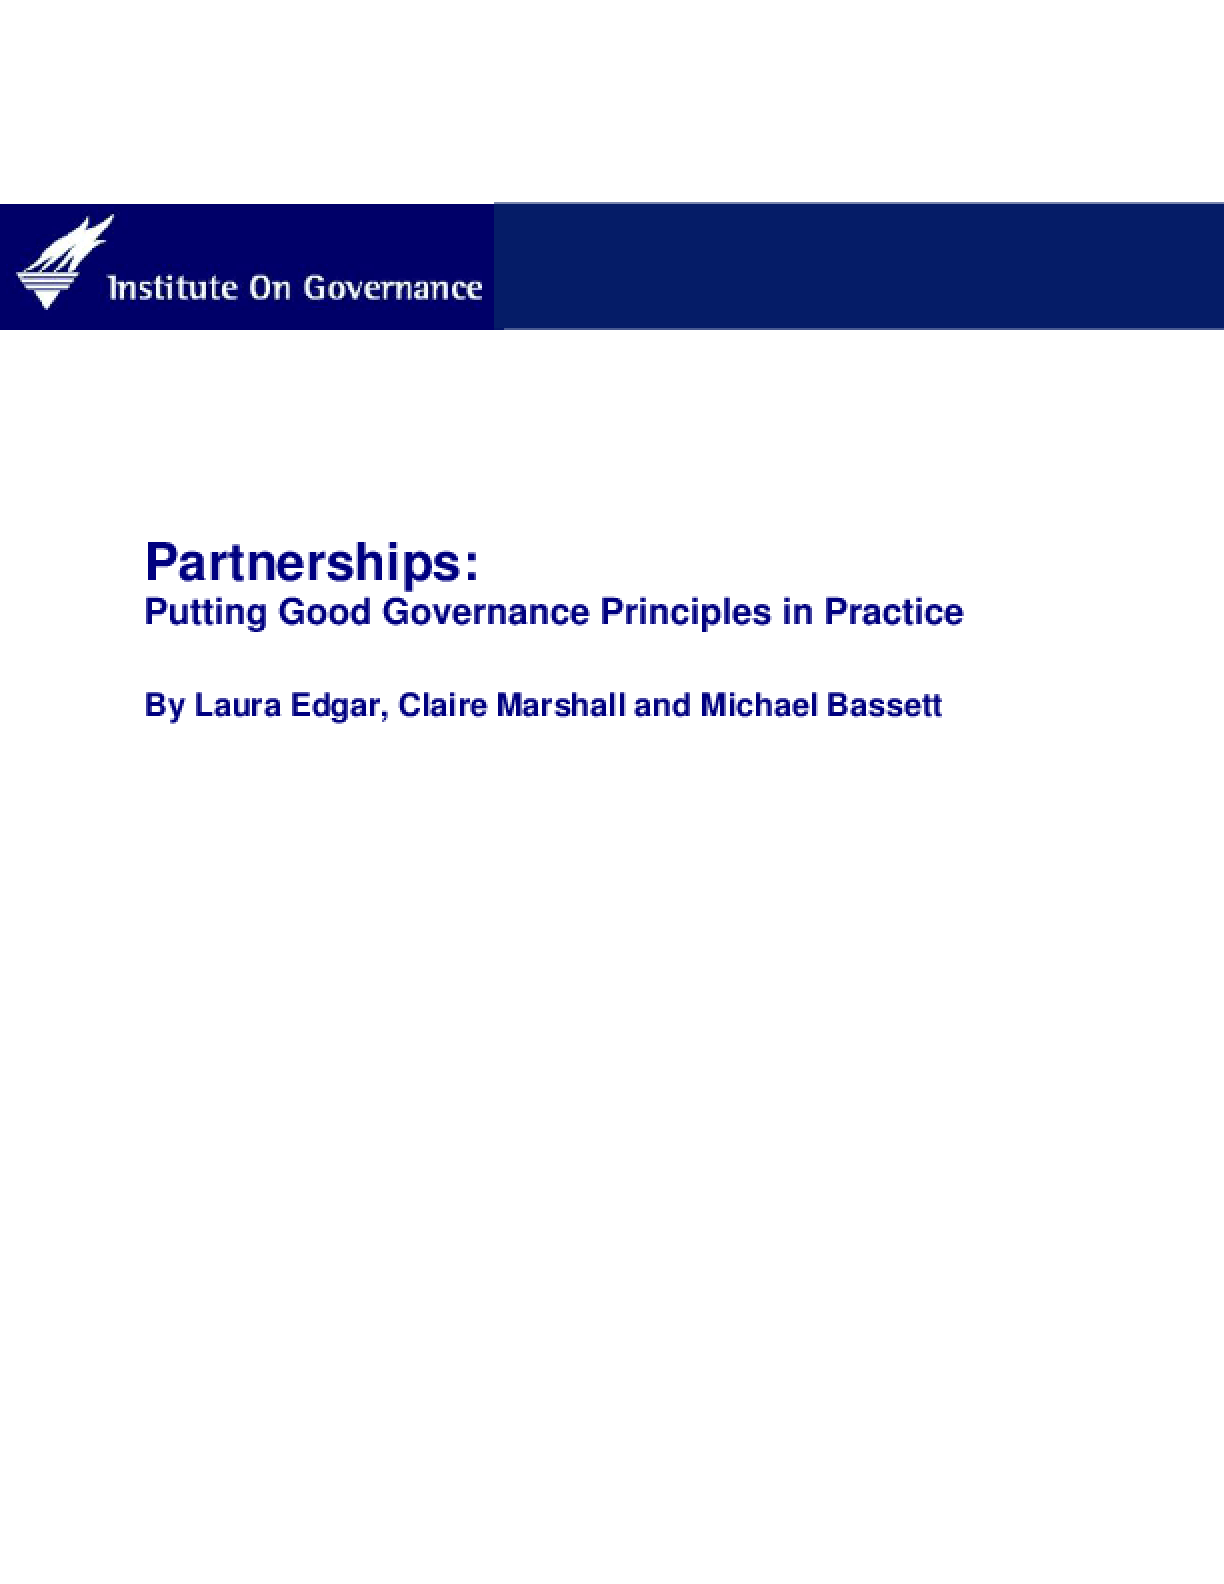 Partnerships: Putting Governance Principles in Practice